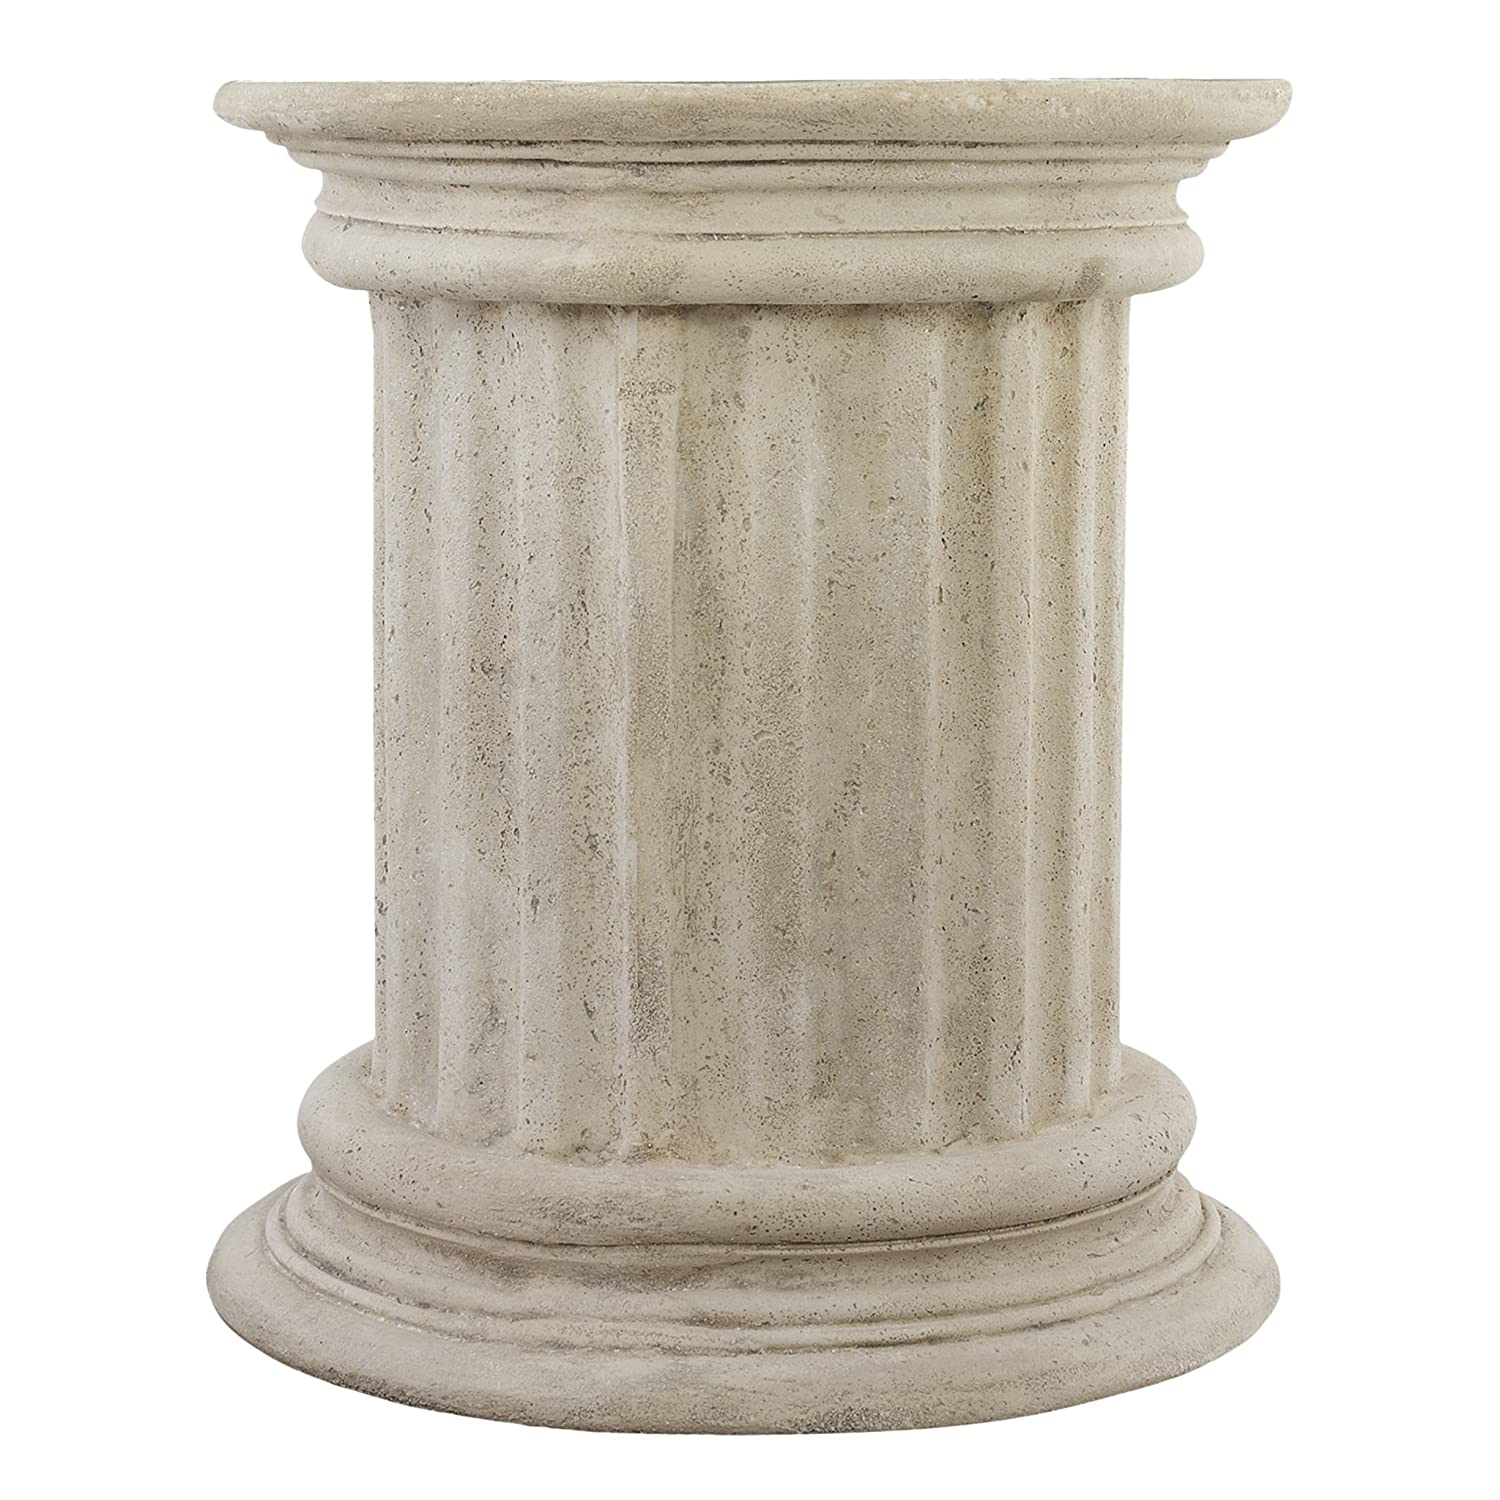 party roman pedestal columns tall empire pcs gold height stand products wedding roma adjustable prop plant decorative